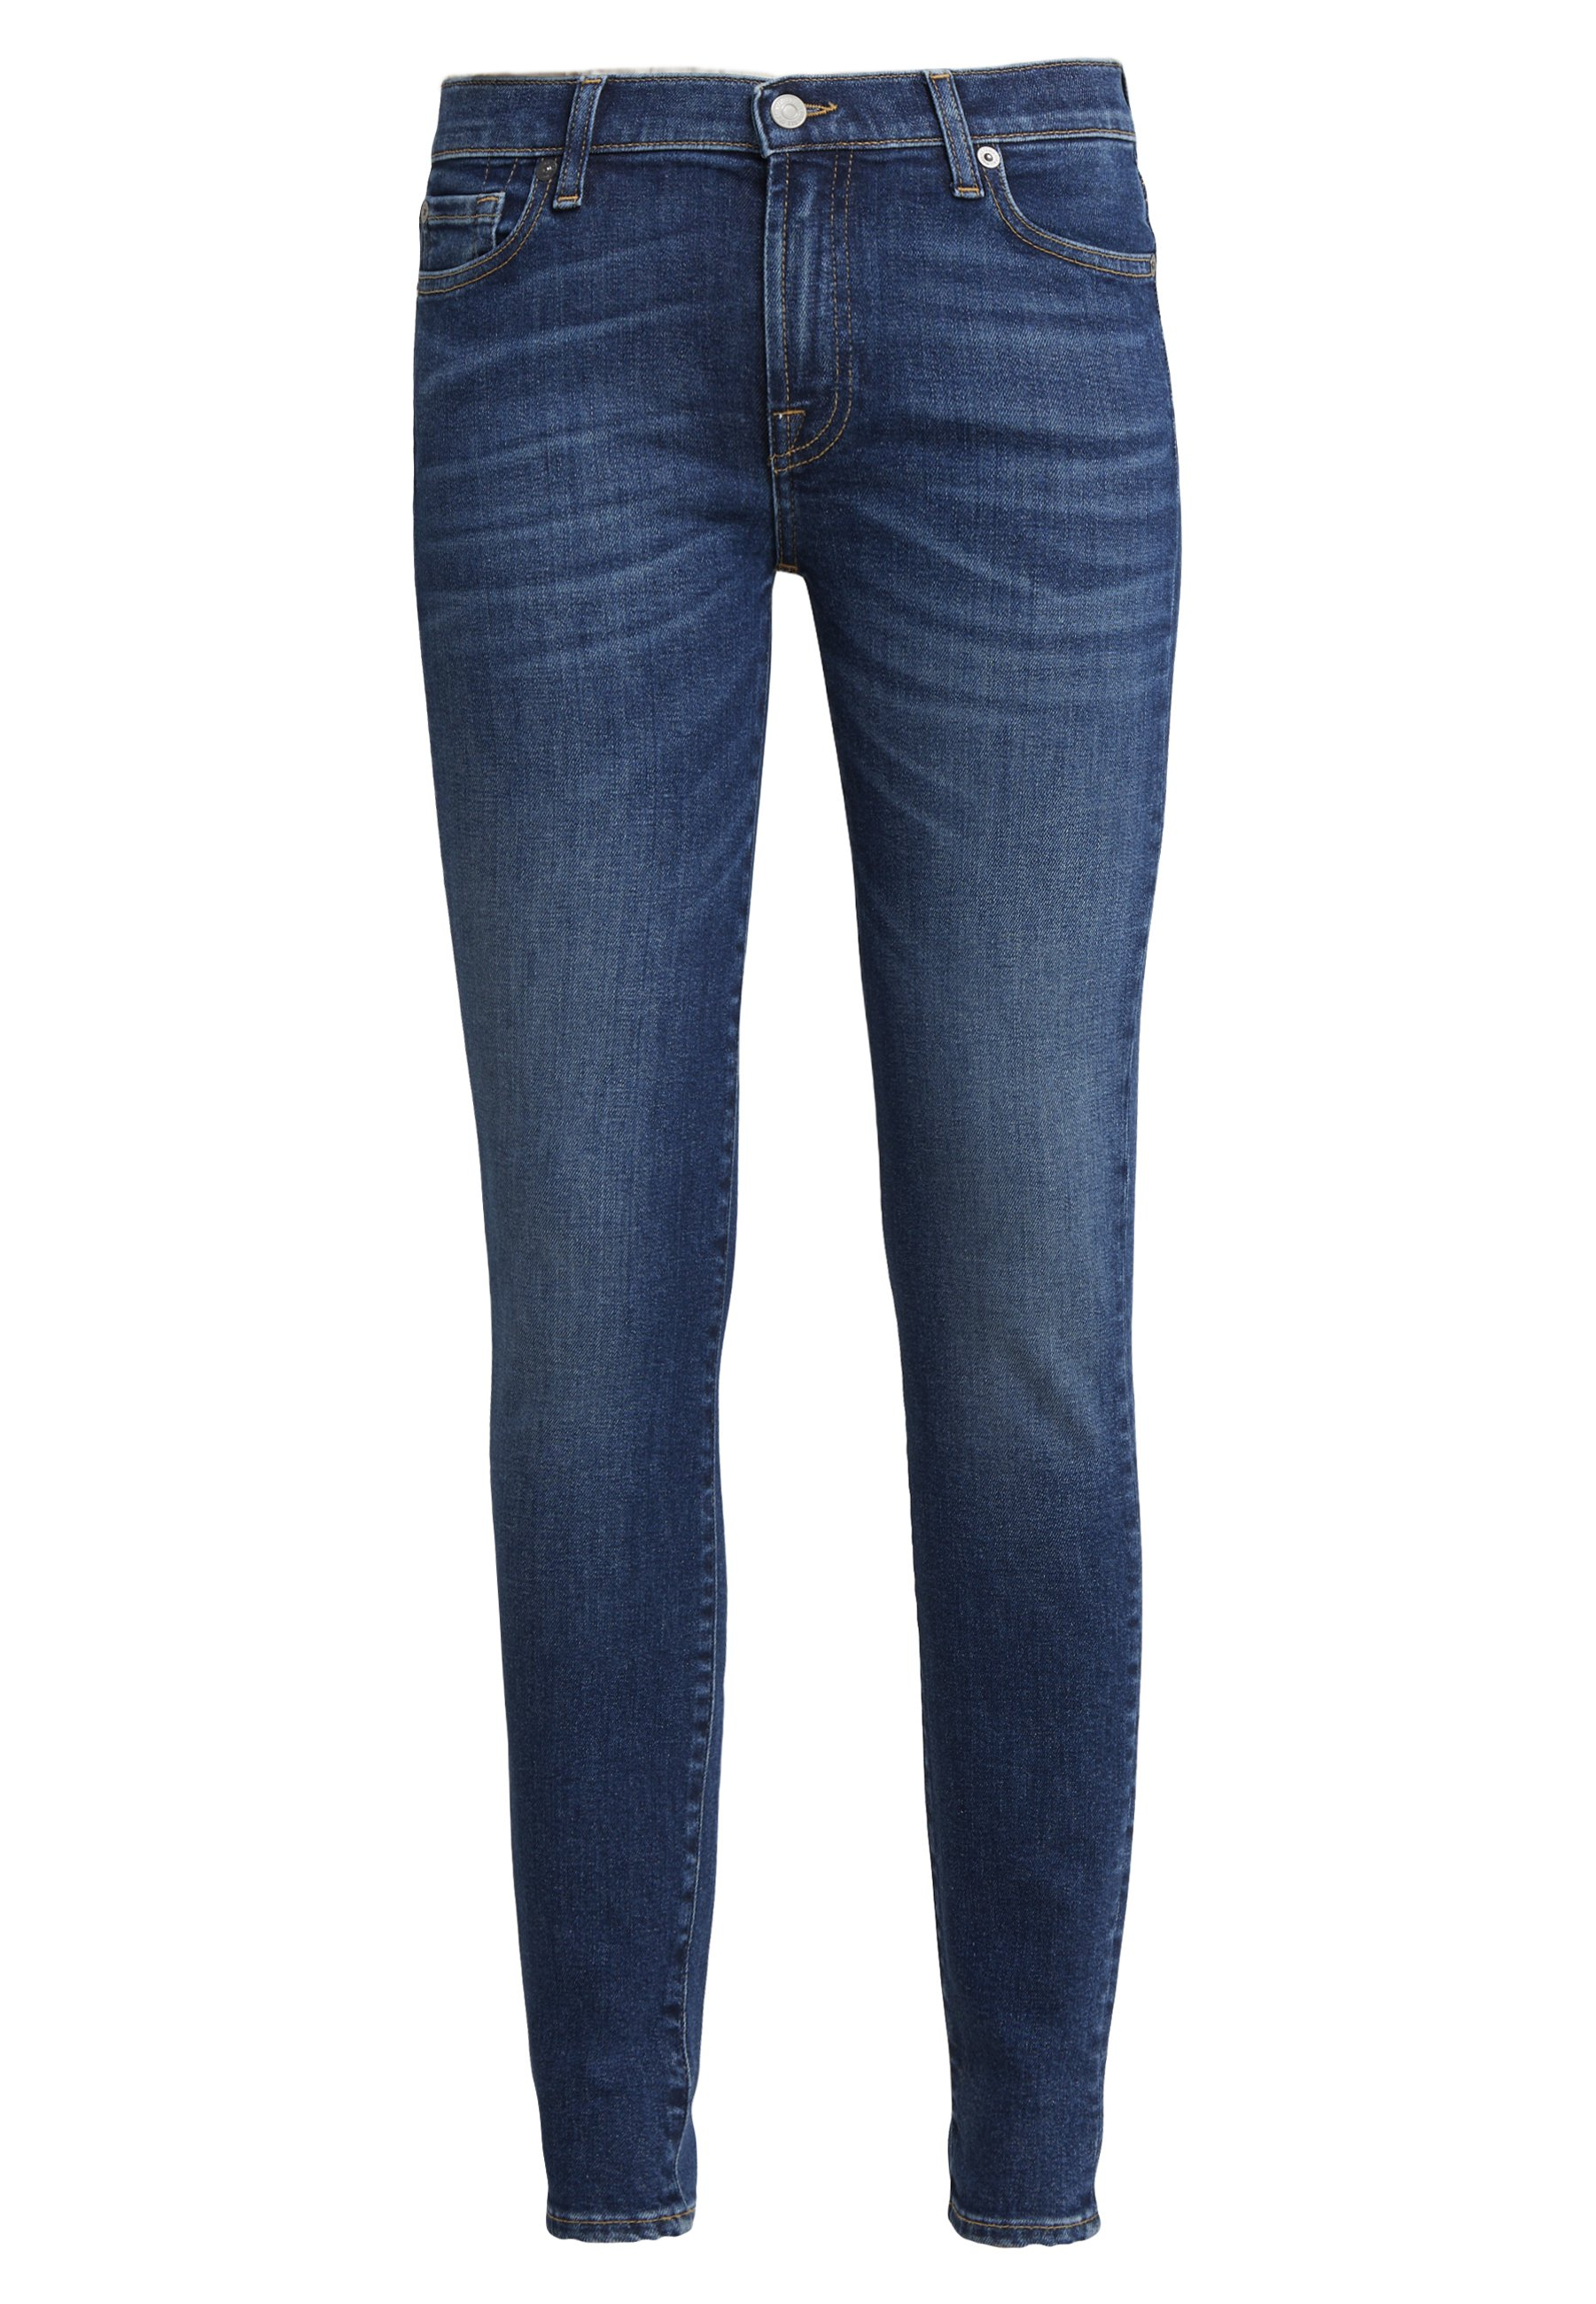 7 for all mankind Jeans Skinny Fit - elite mid indigo 8fm7ajty